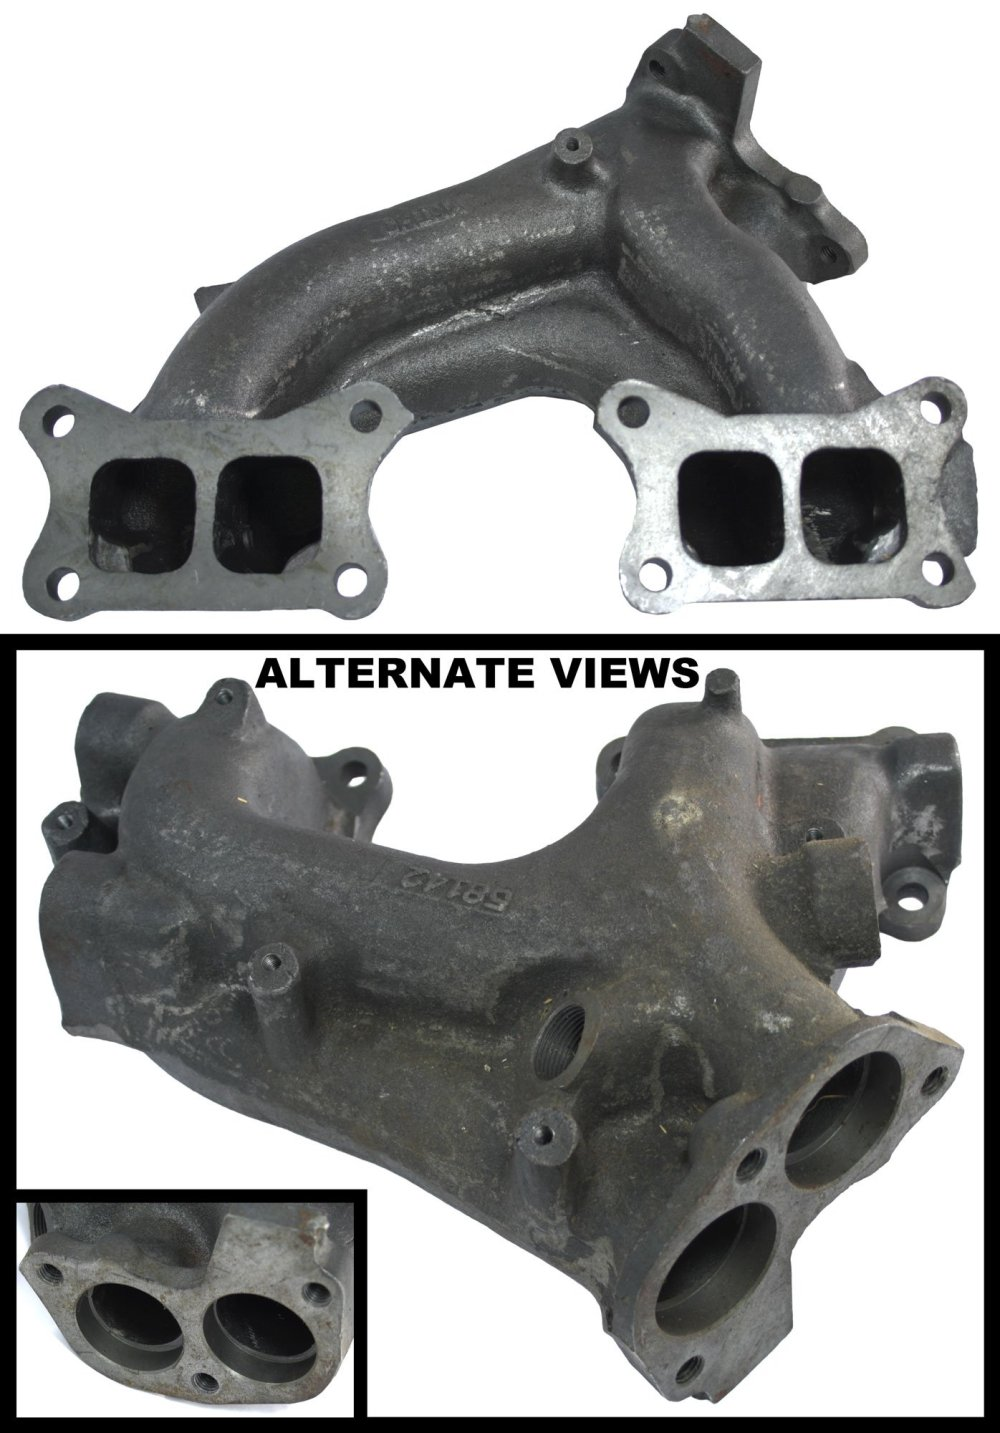 medium resolution of apdty 14002 14c00 exhaust manifold cast iron assembly fits 1986 1989 nissan d21 pickup